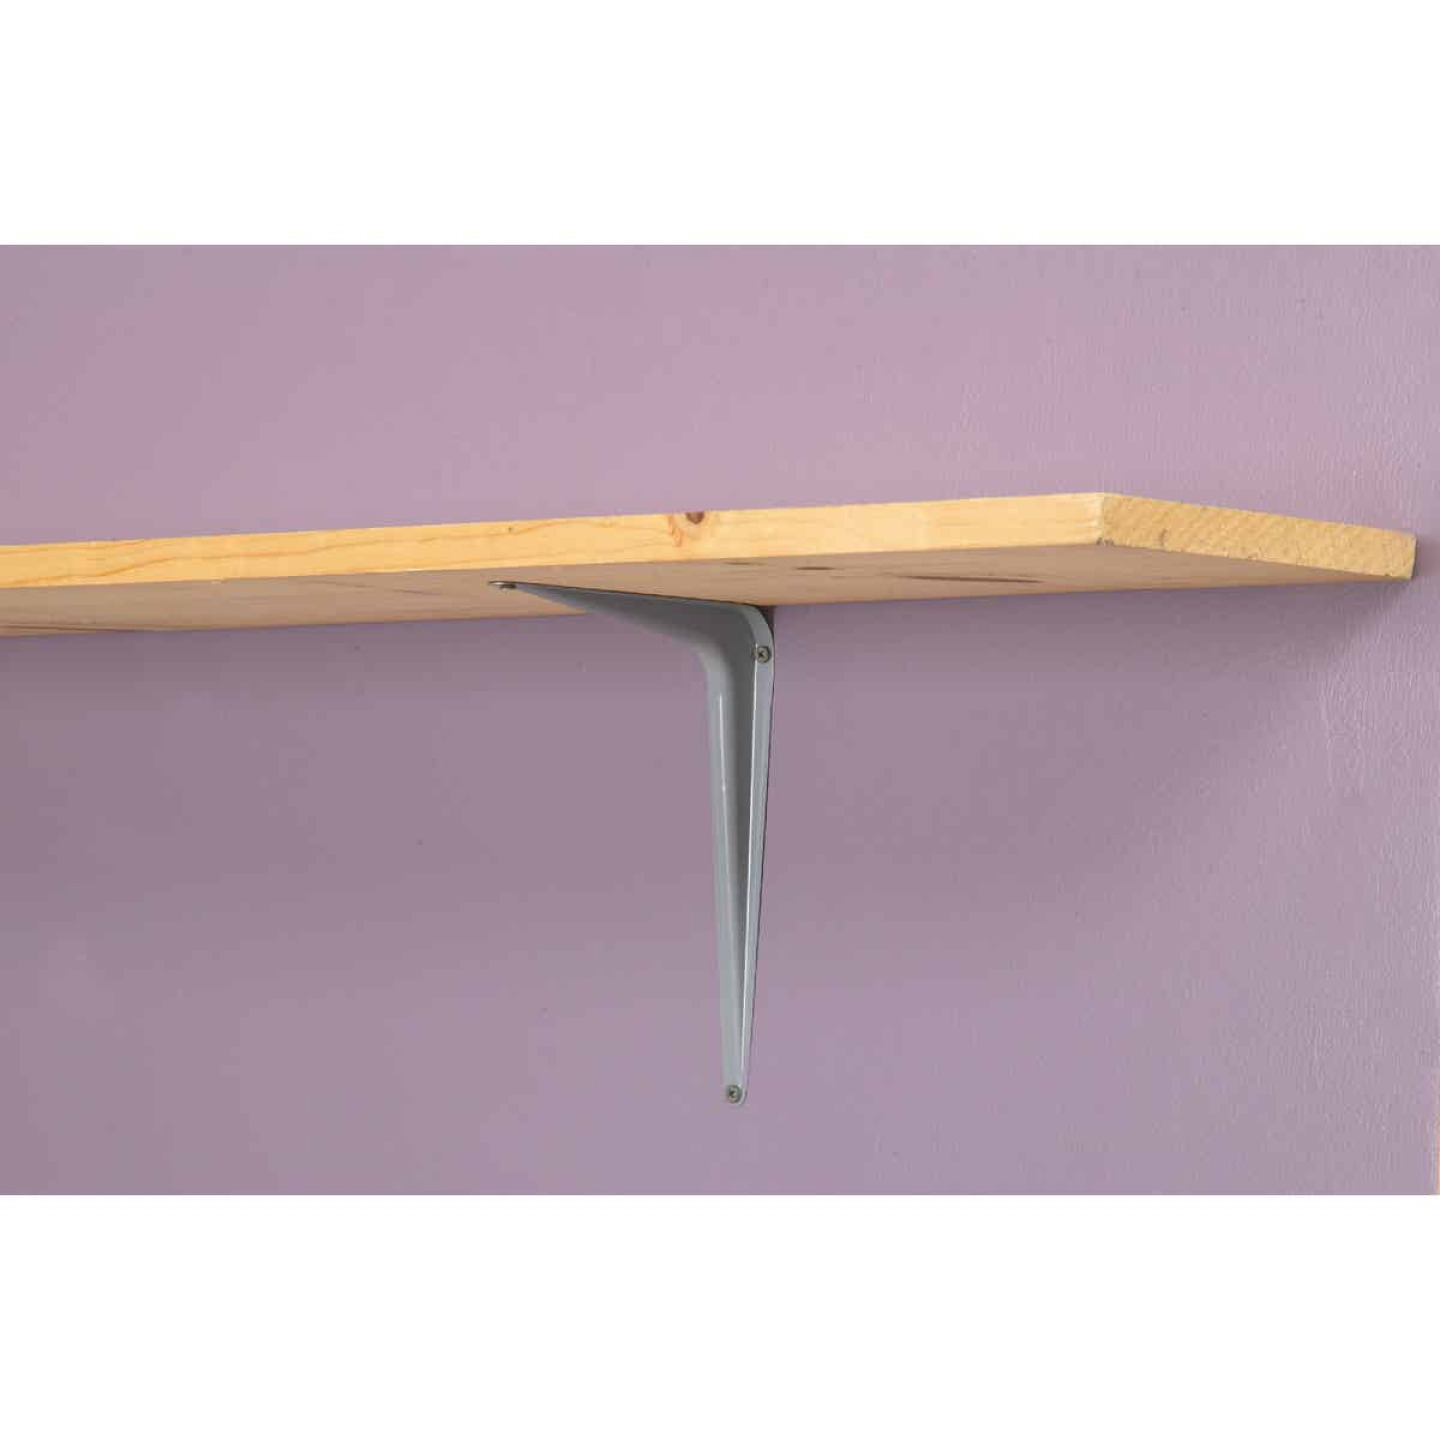 National 211 8 In. D. x 10 In. H. Gray Steel Shelf Bracket Image 2